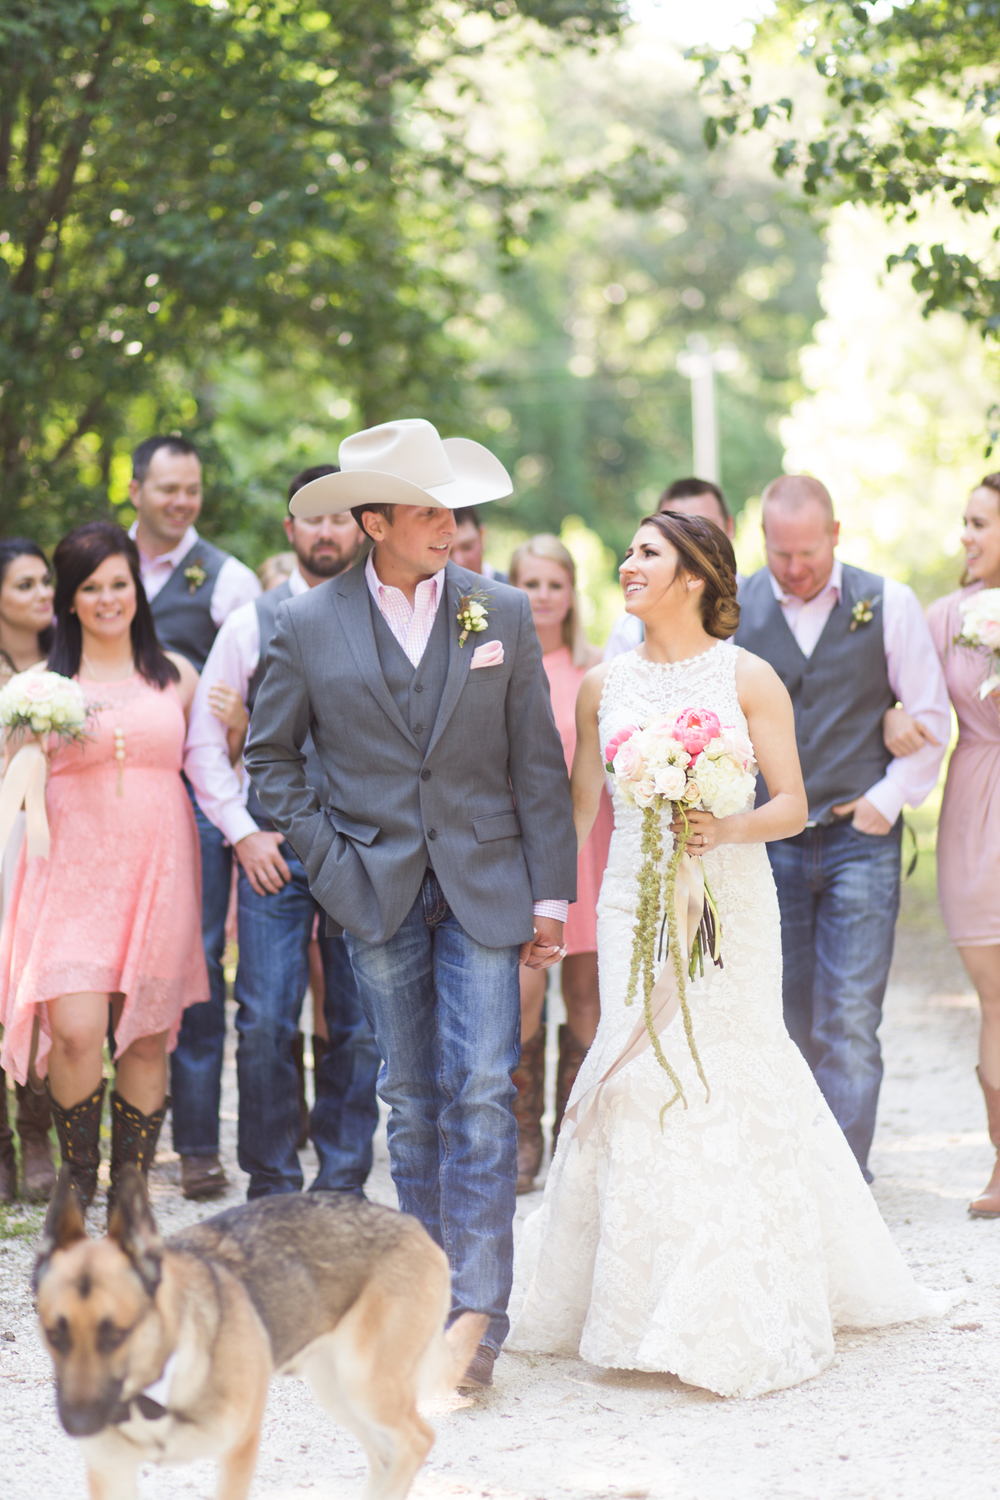 oklahoma wedding photographer pasture at willows ranch broken bow bride and groom and wedding party laughing